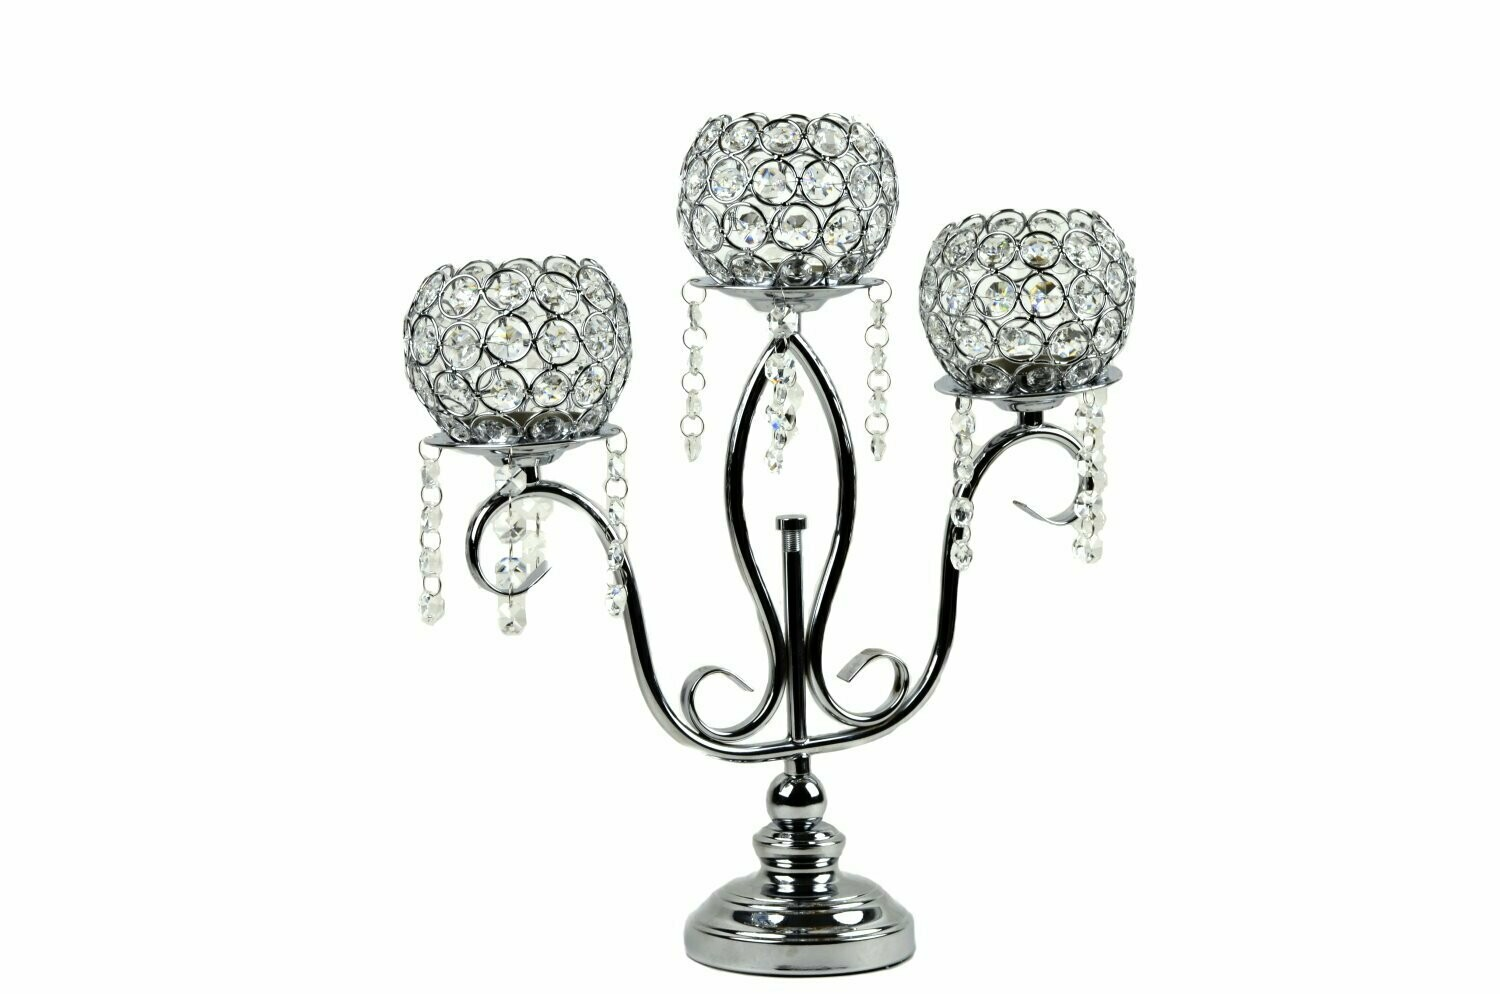 Candle Holder Stand 3 Arm Candelabra Table Centerpieces - Silver